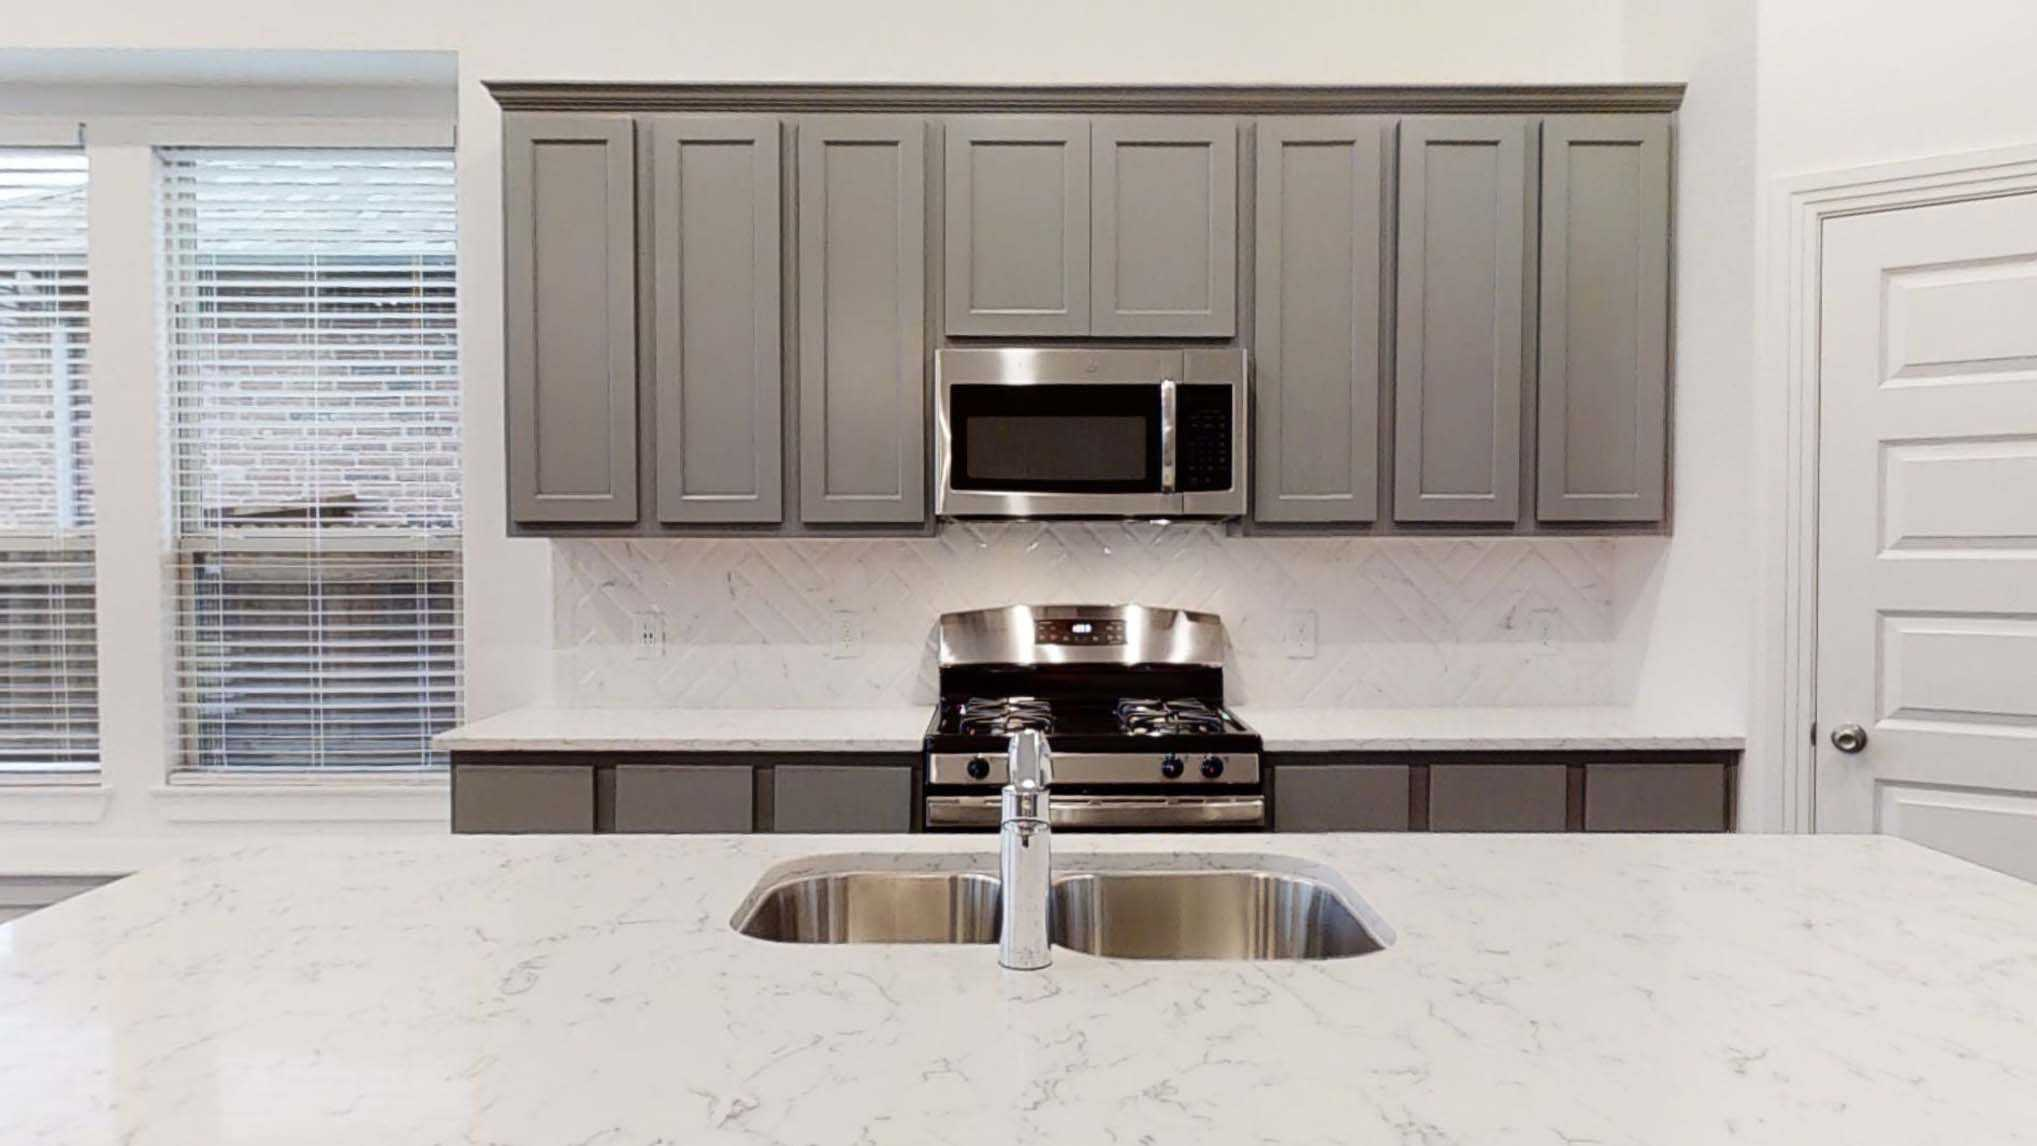 Kitchen featured in the Plan Denton By Highland Homes in Dallas, TX